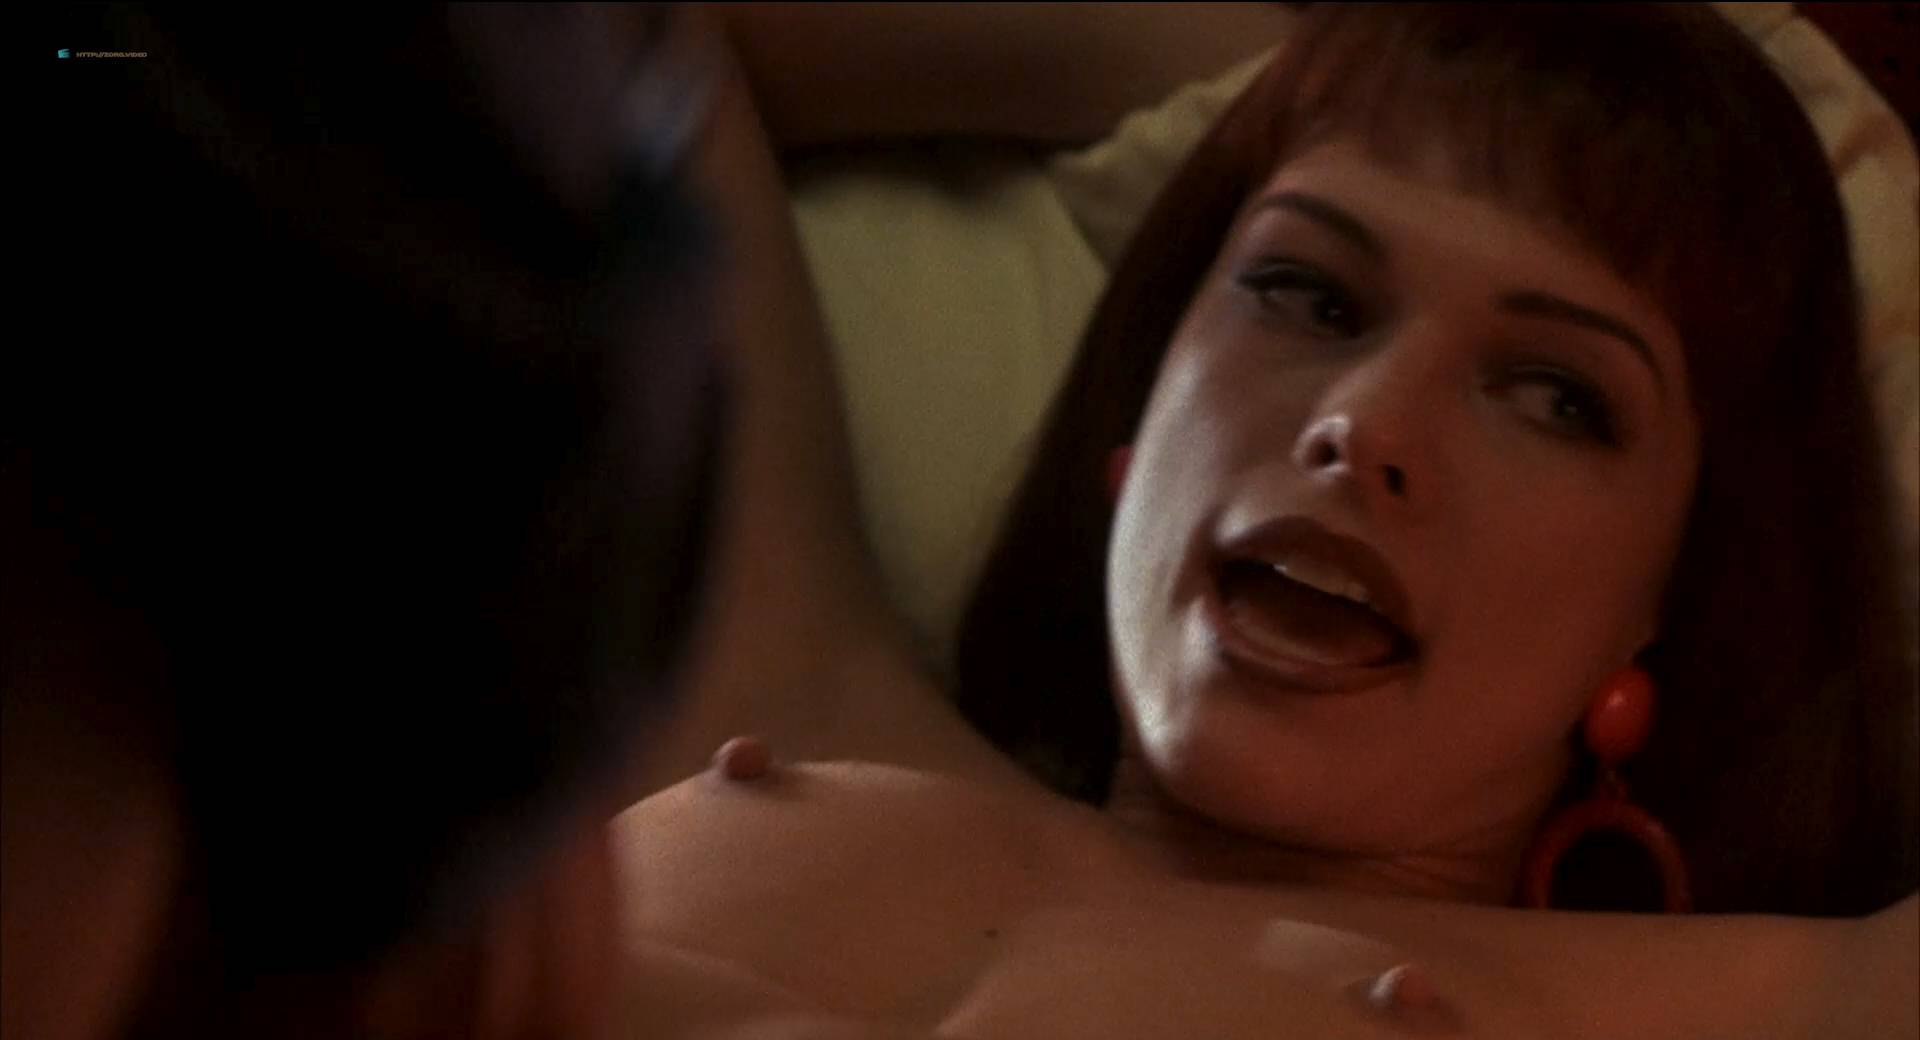 Milla Jovovic nude and sex Rosario Dawson and other's nude too - He Got Game (1998) HD 1080p BluRay (12)